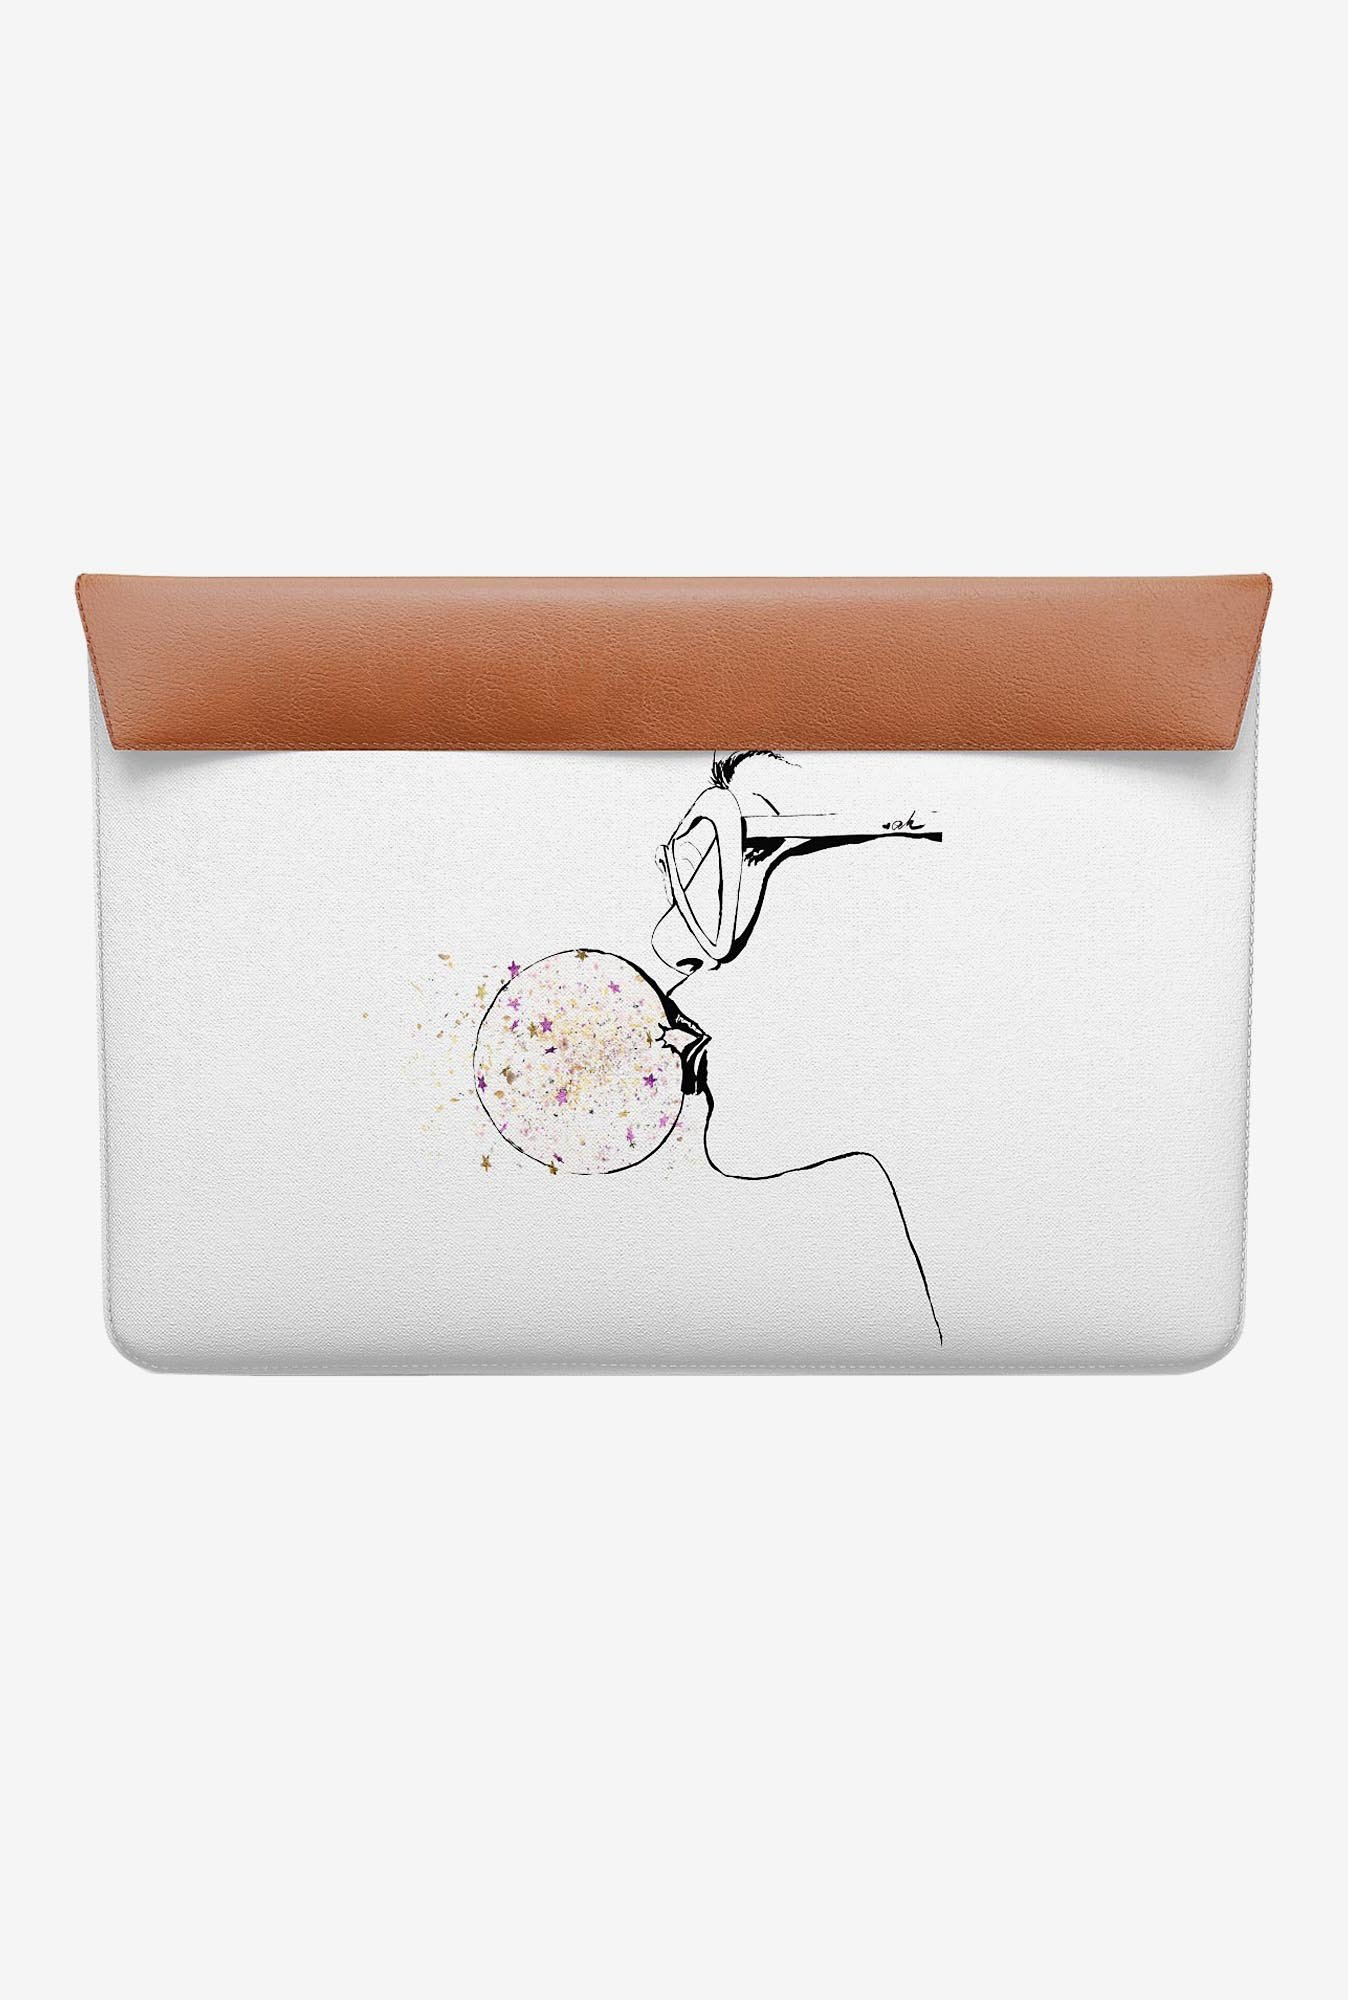 DailyObjects Bubble Gum MacBook Pro 13 Envelope Sleeve